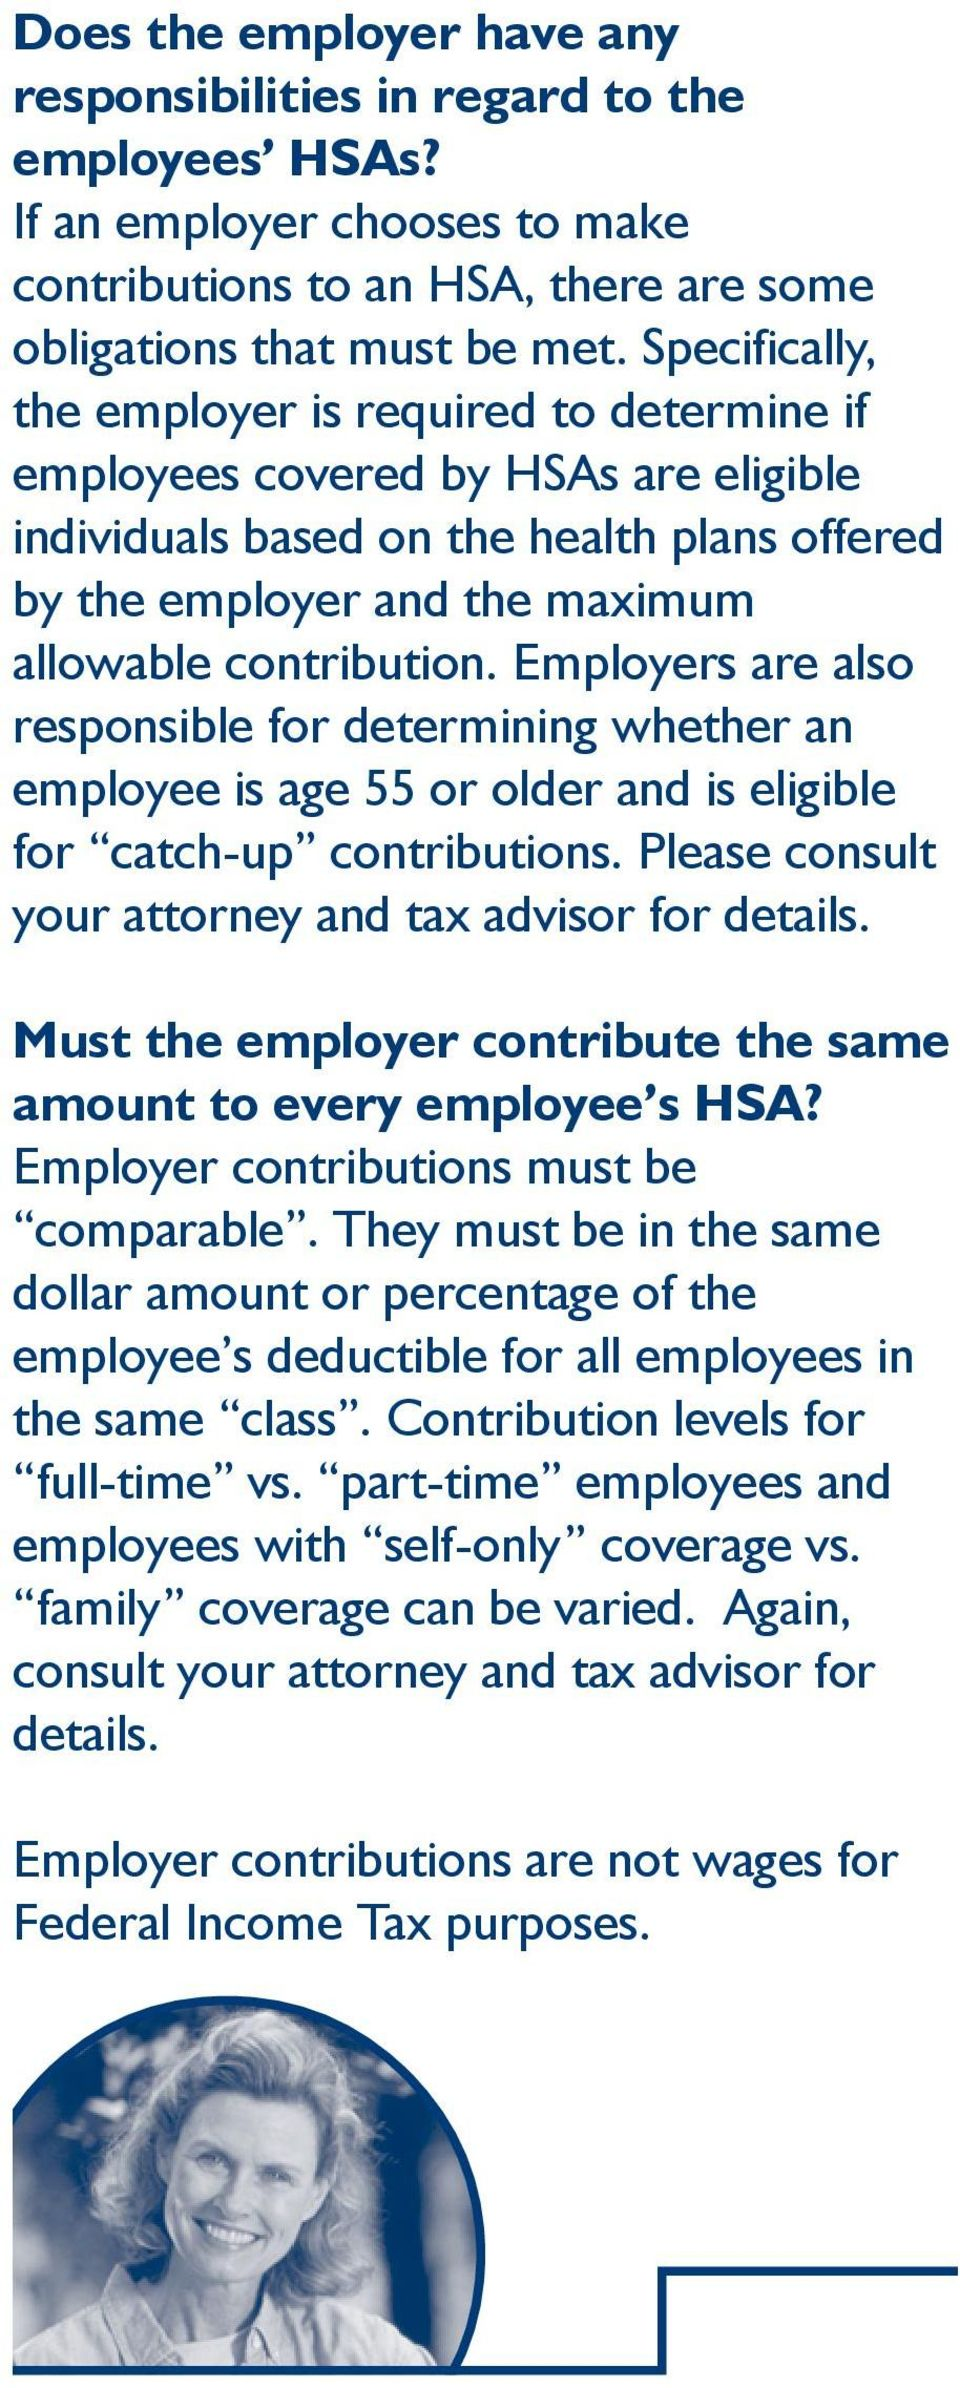 Employers are also responsible for determining whether an employee is age 55 or older and is eligible for catch-up contributions. Please consult your attorney and tax advisor for details.